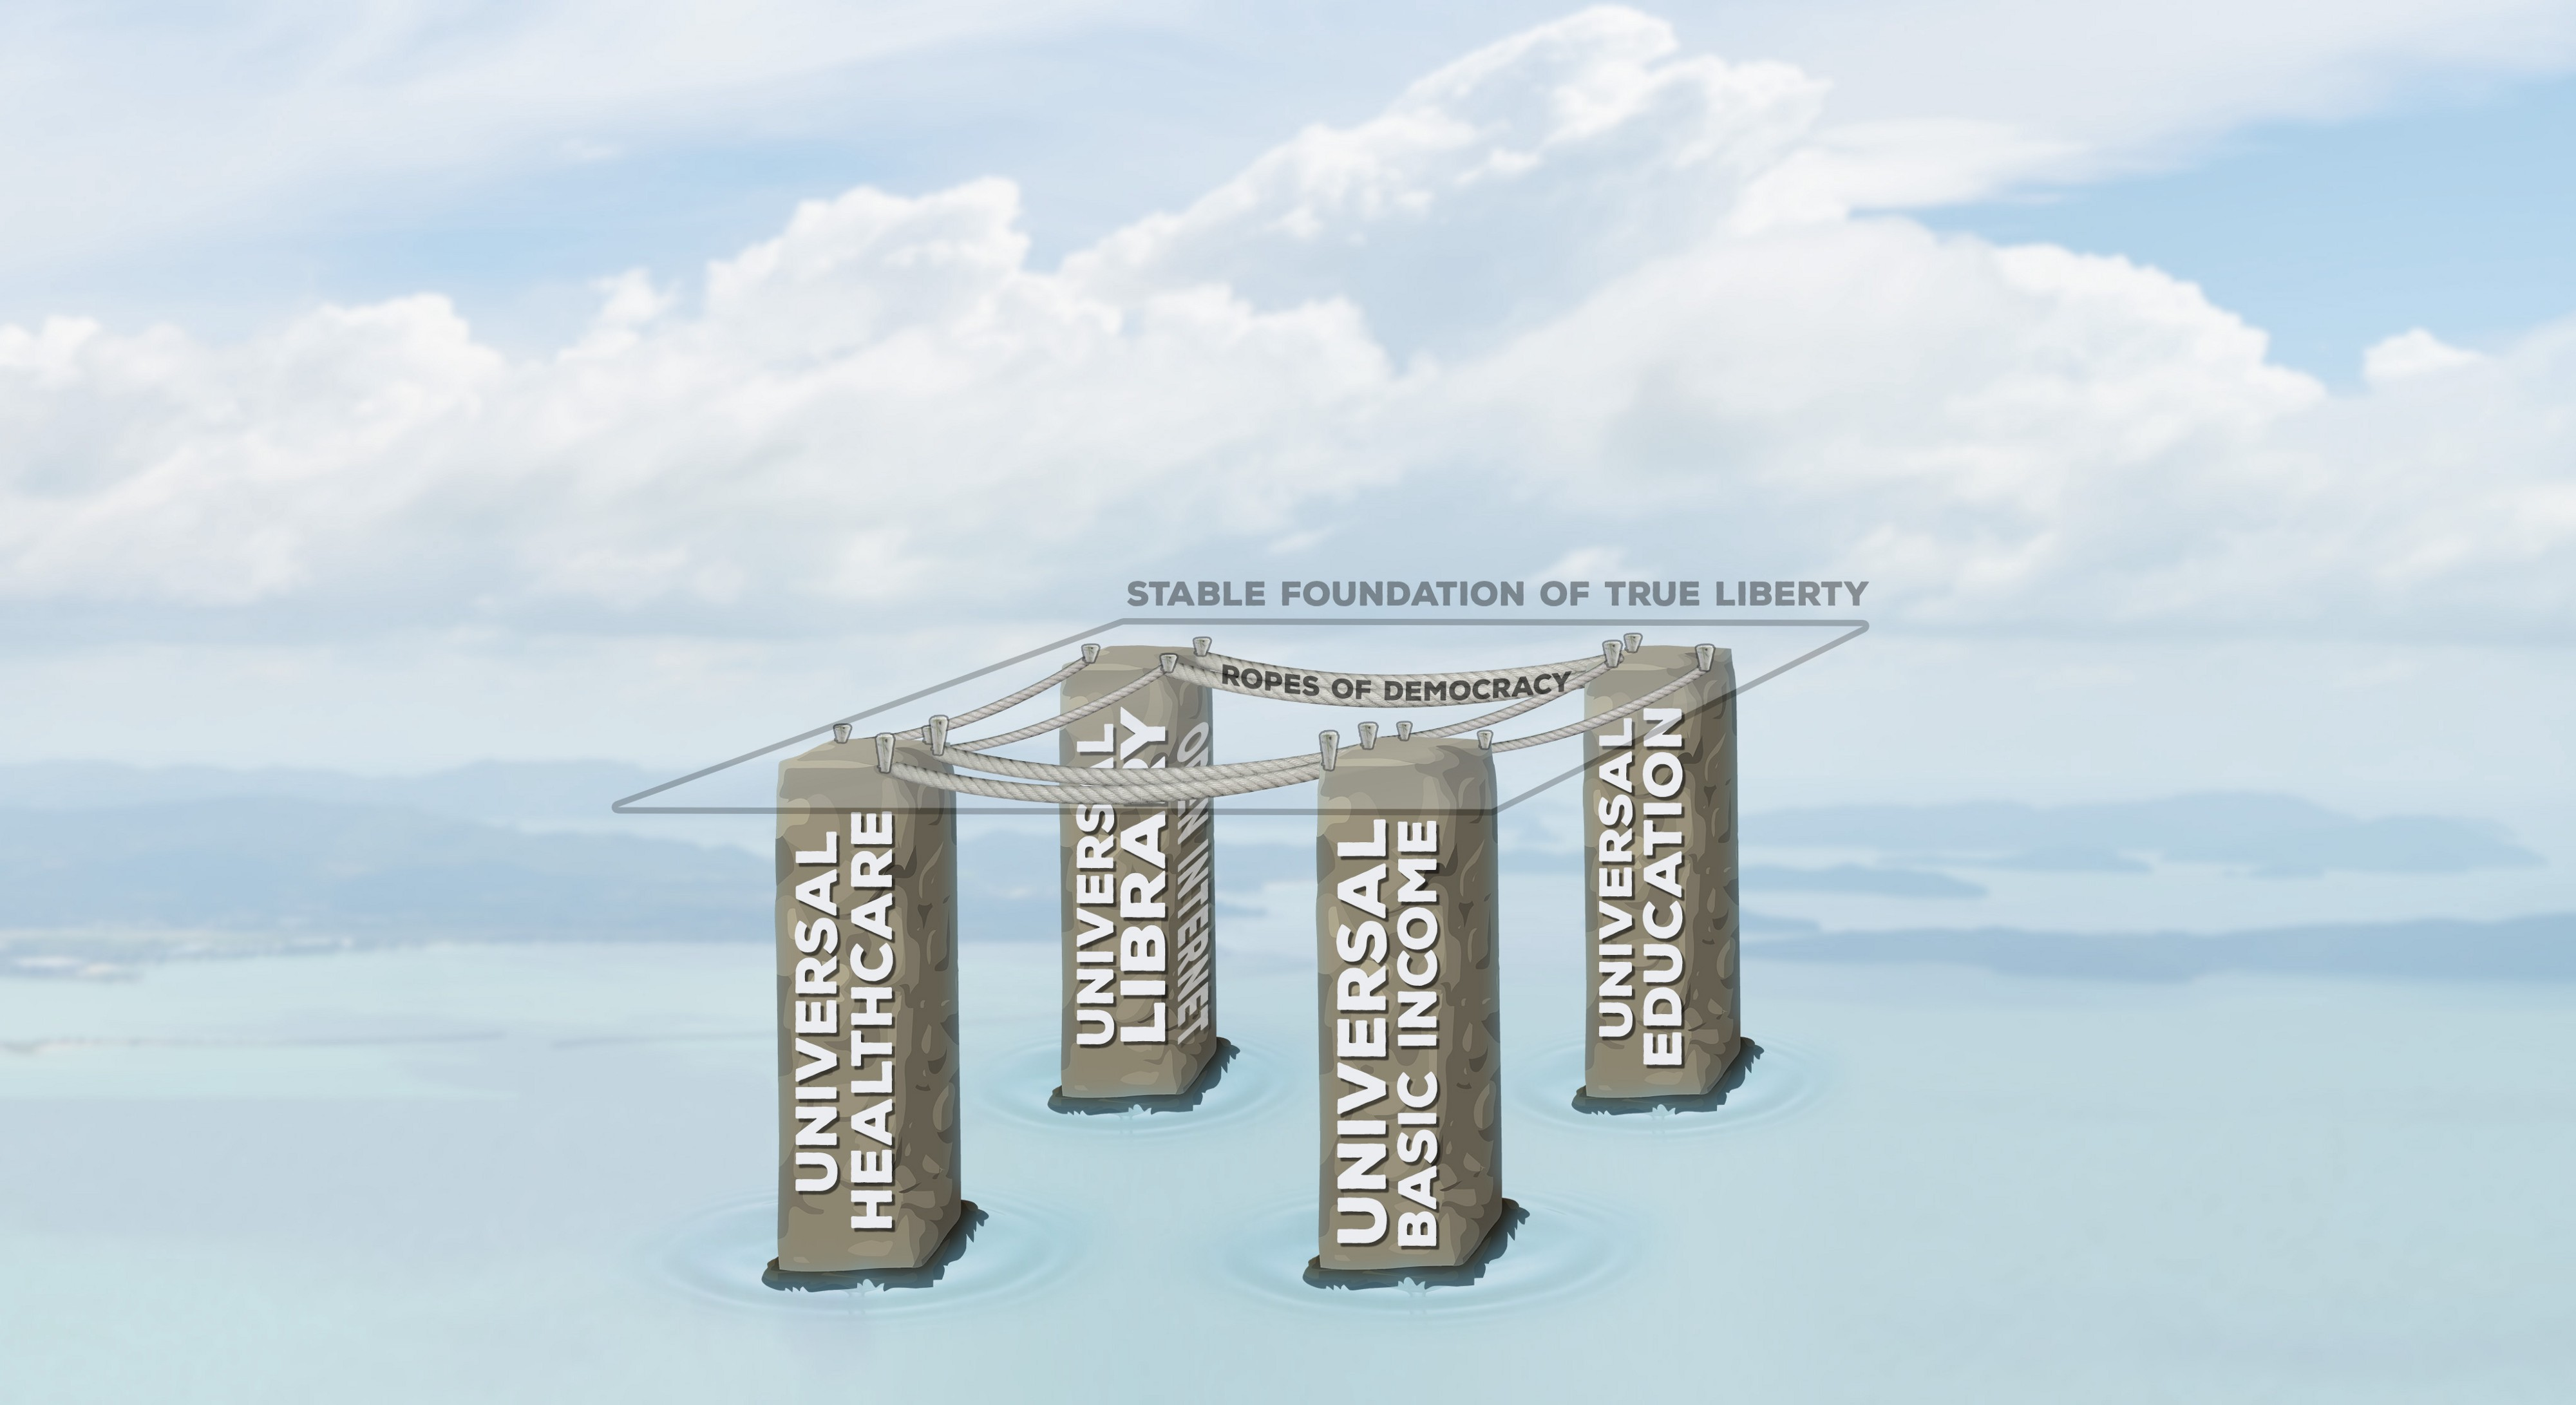 The Four Foundations of True Liberty